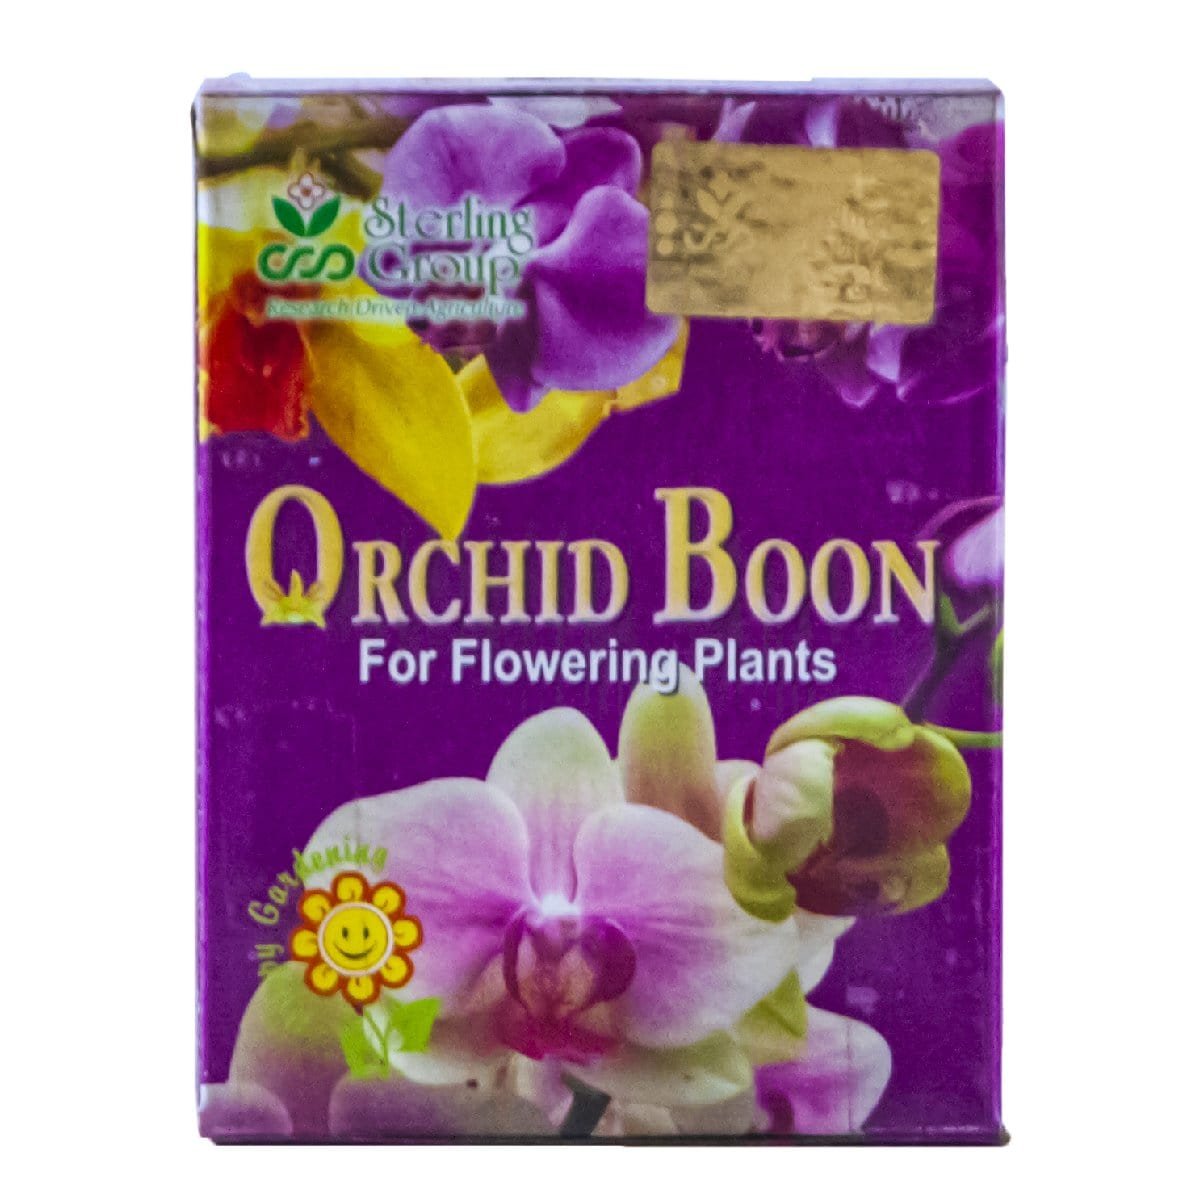 Orchid Boon Fertilizer